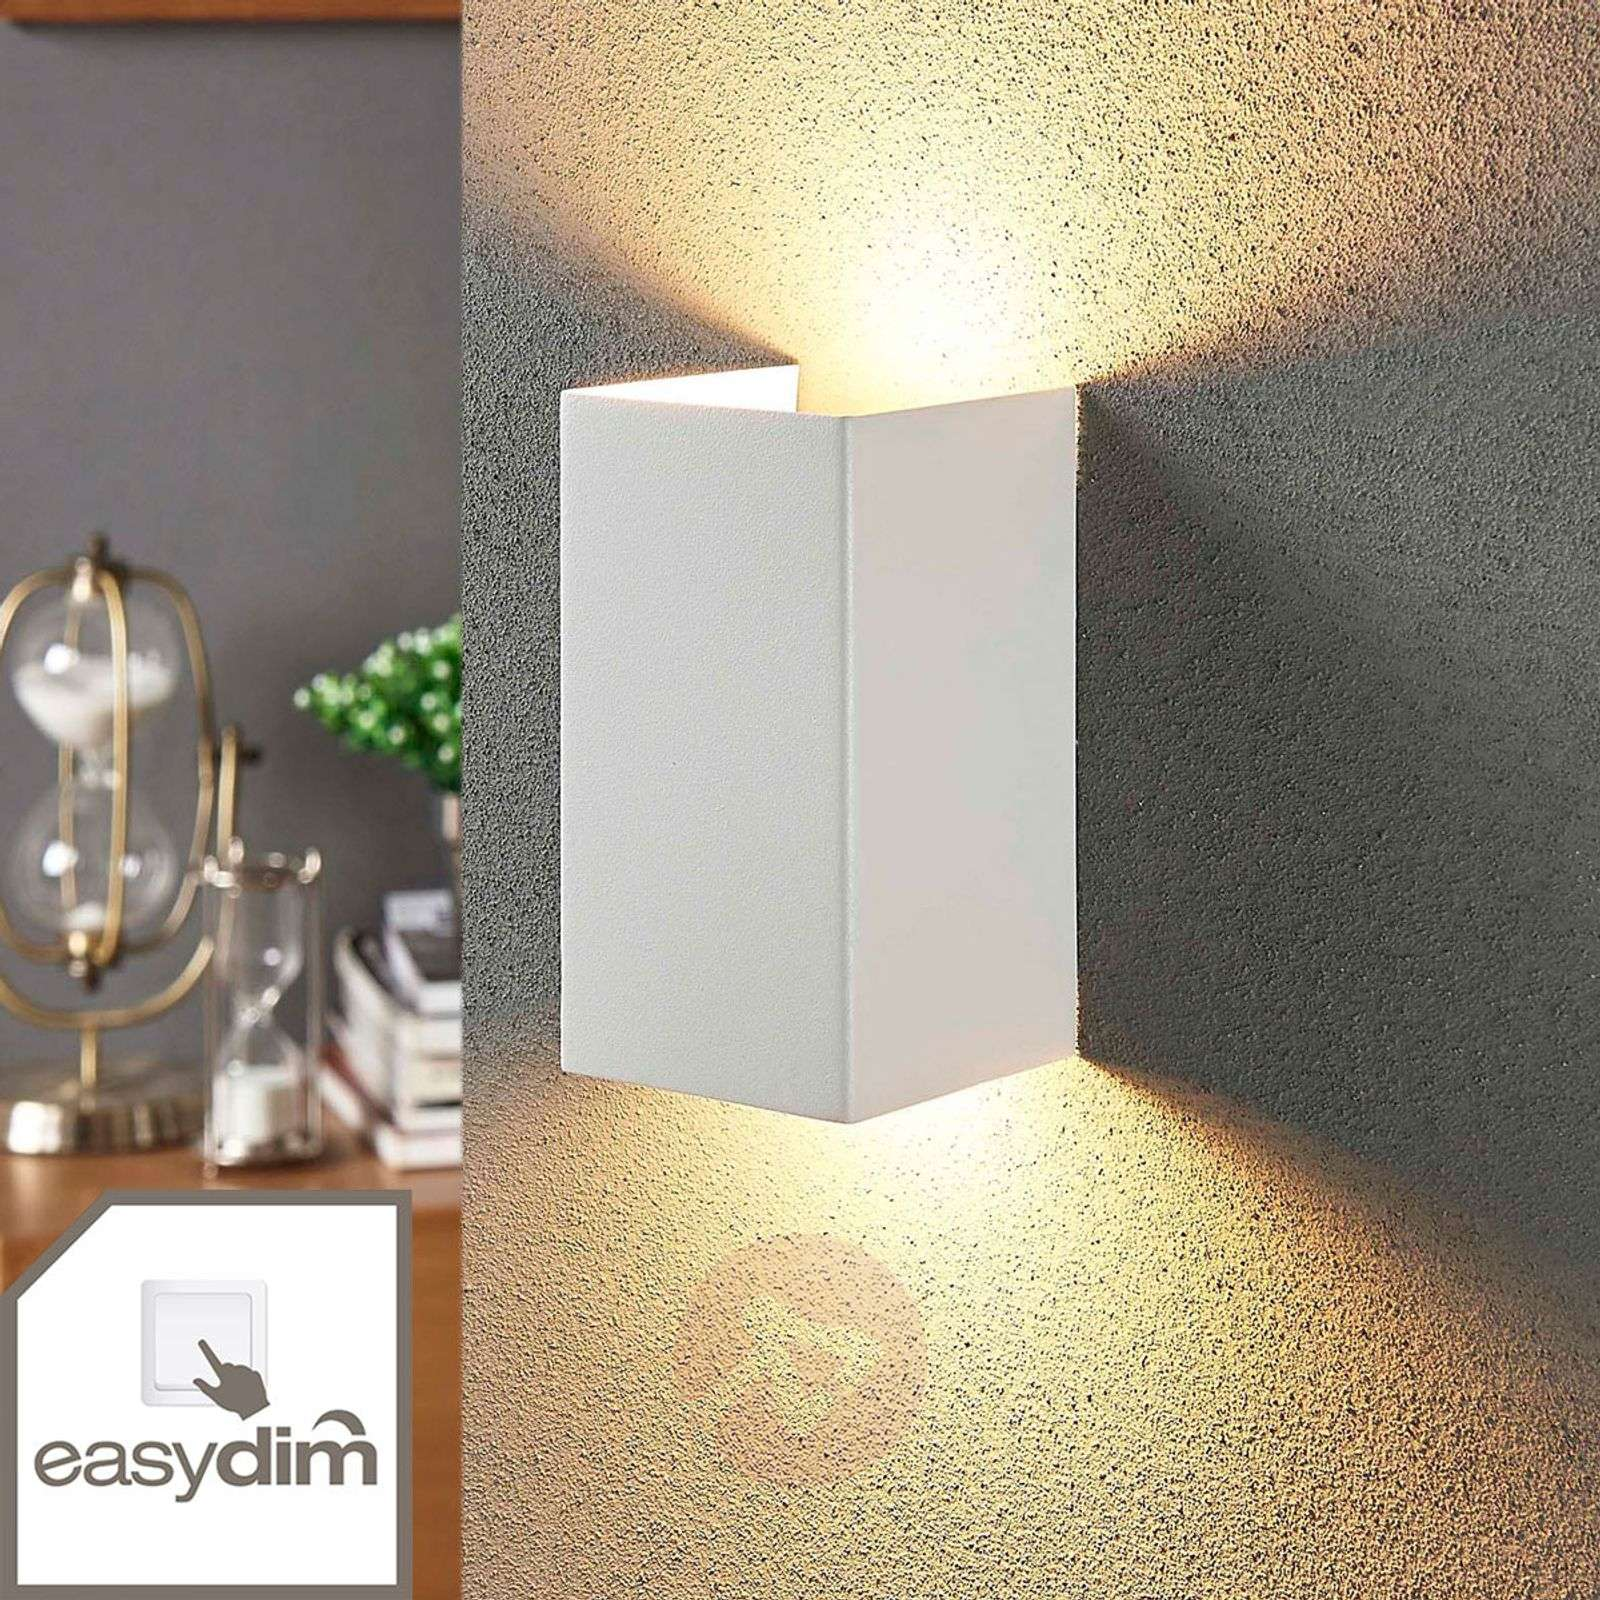 2-bulb LED wall light Jaymie, dimmable via switch-9621283-02